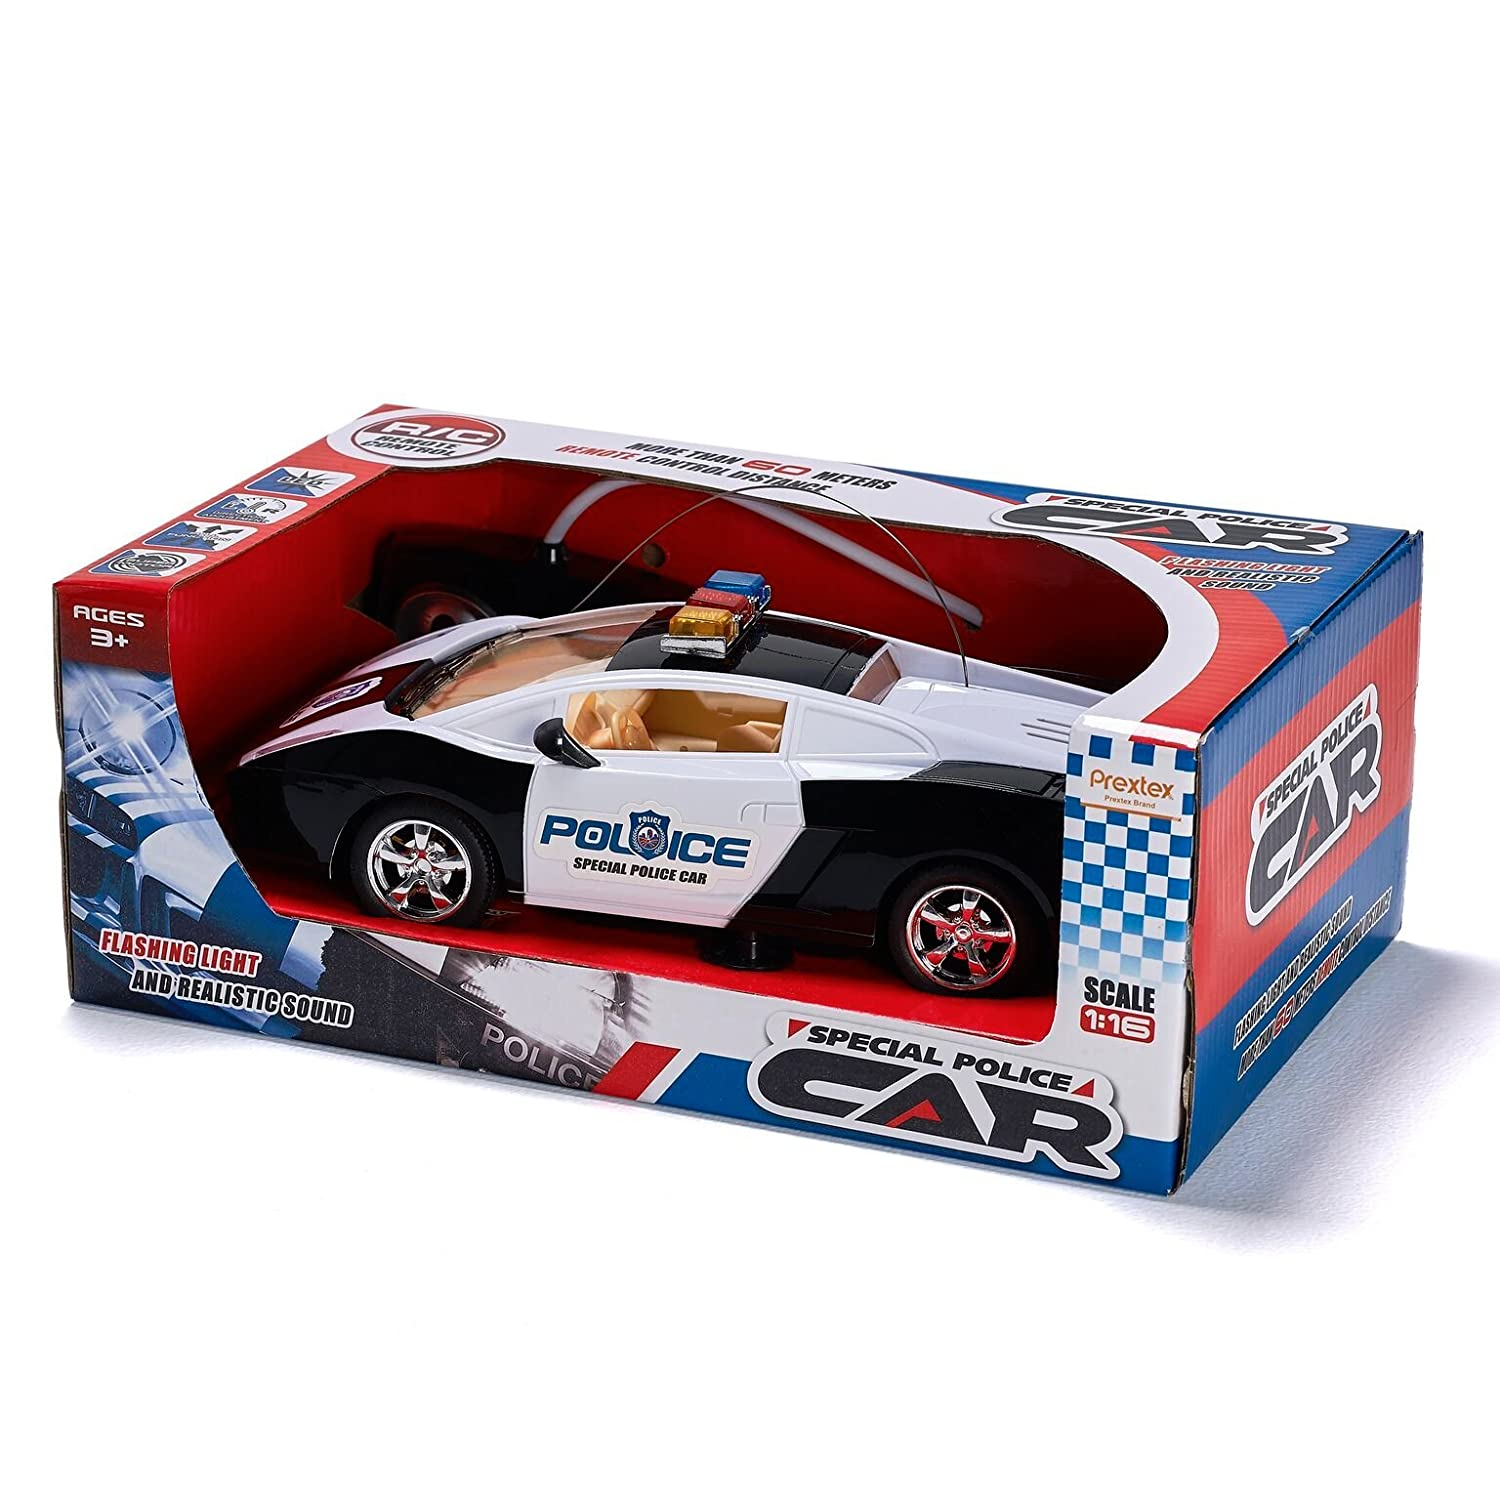 Amazon Prextex Remote Control Police Car with LED Lights and